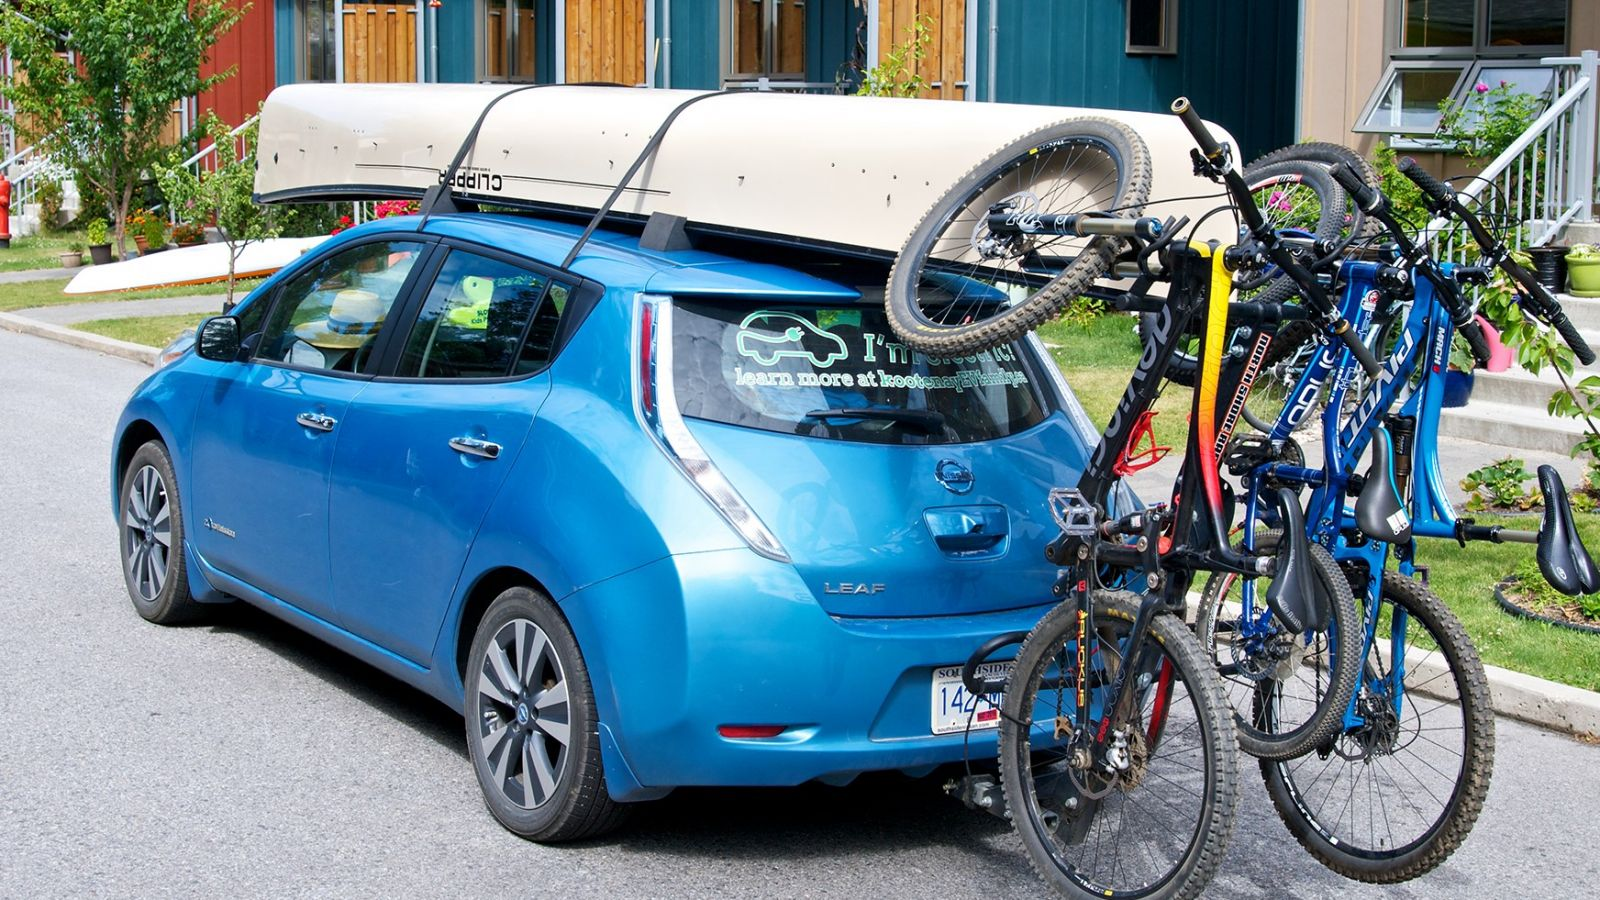 EV Travel and Kootenay lifestyle go hand-in-hand. KootenayEVFamily.ca